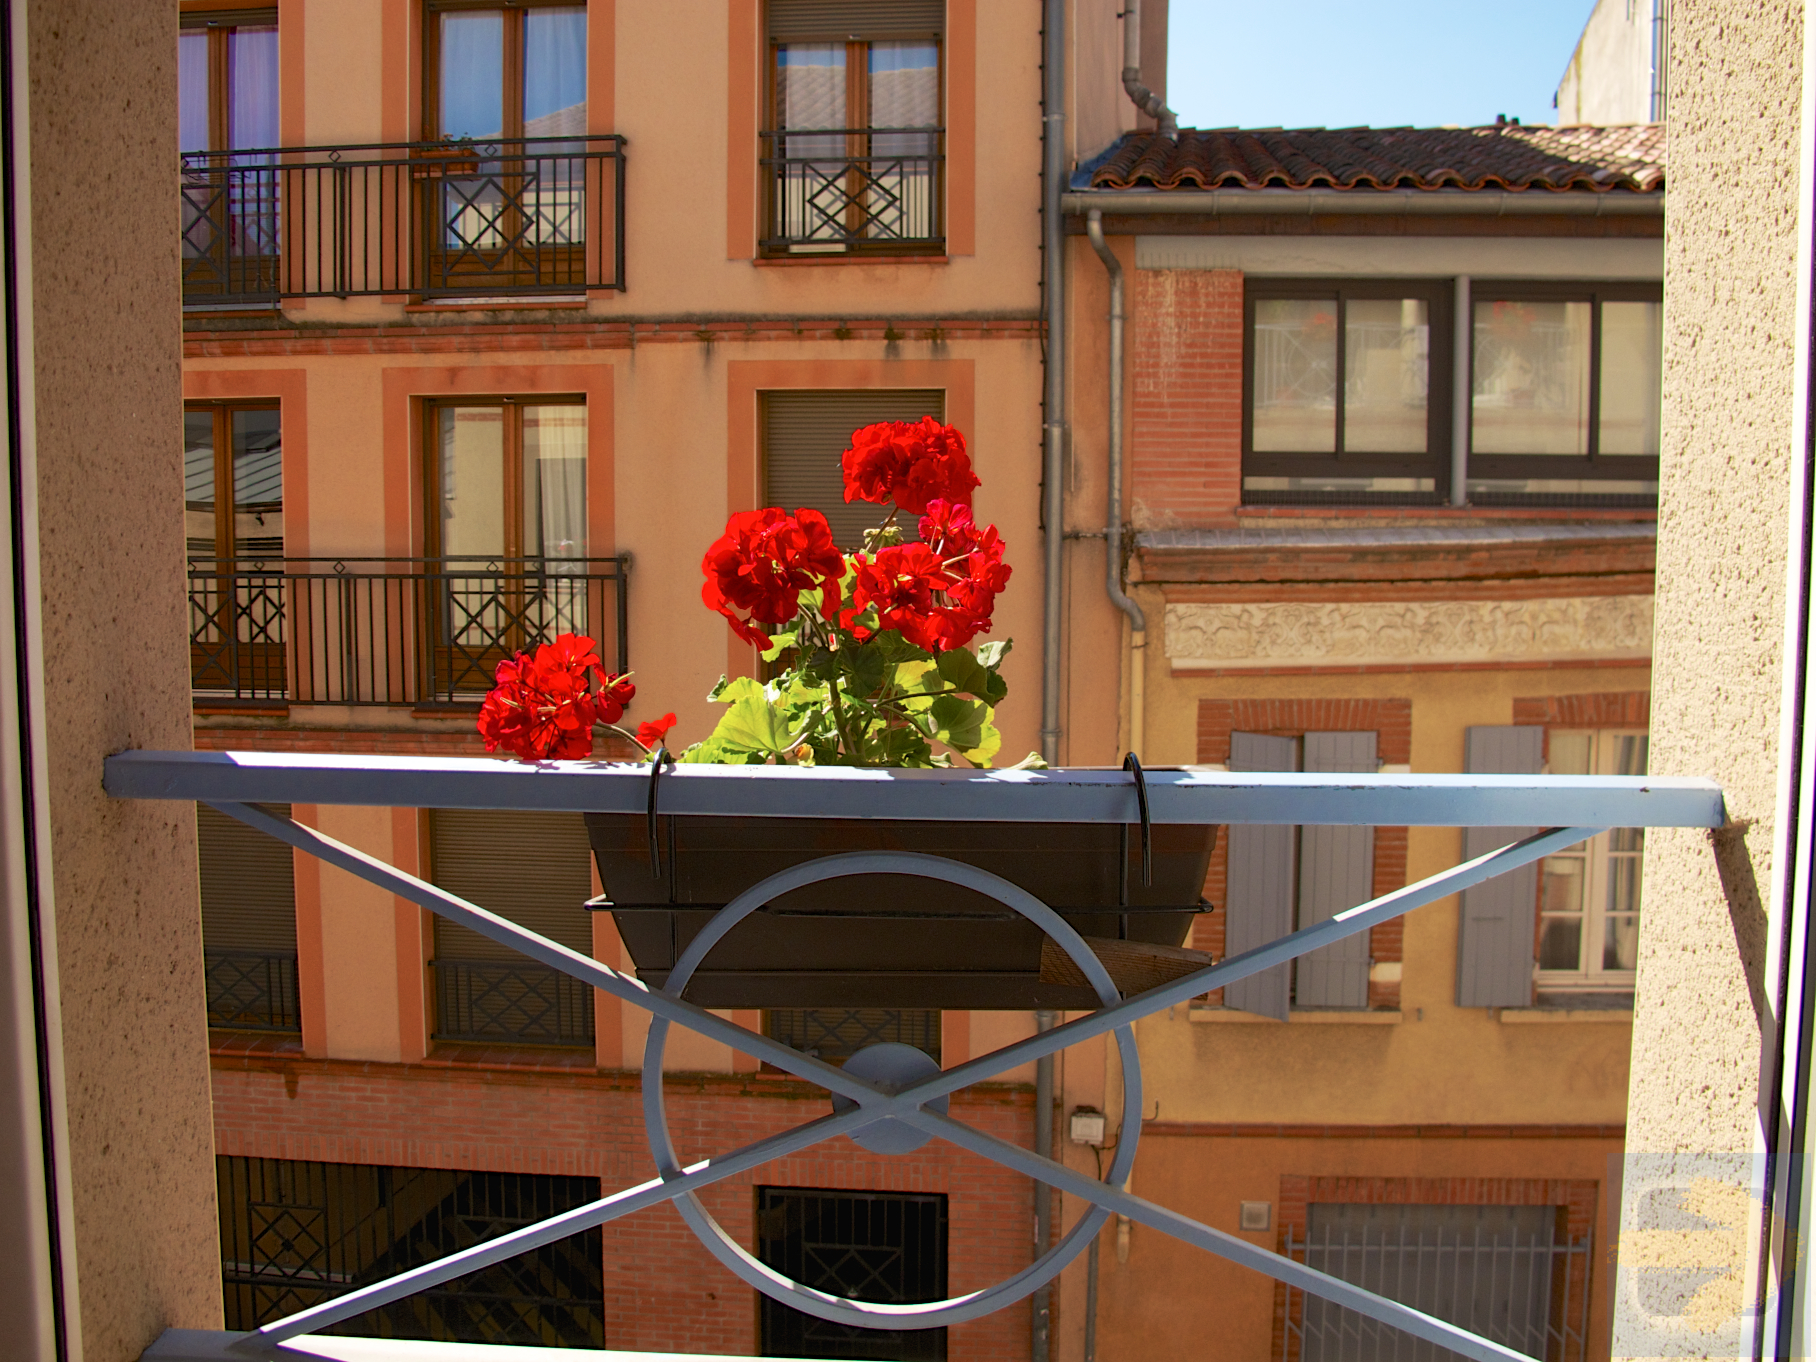 View from our Albergue window in Toulouse.